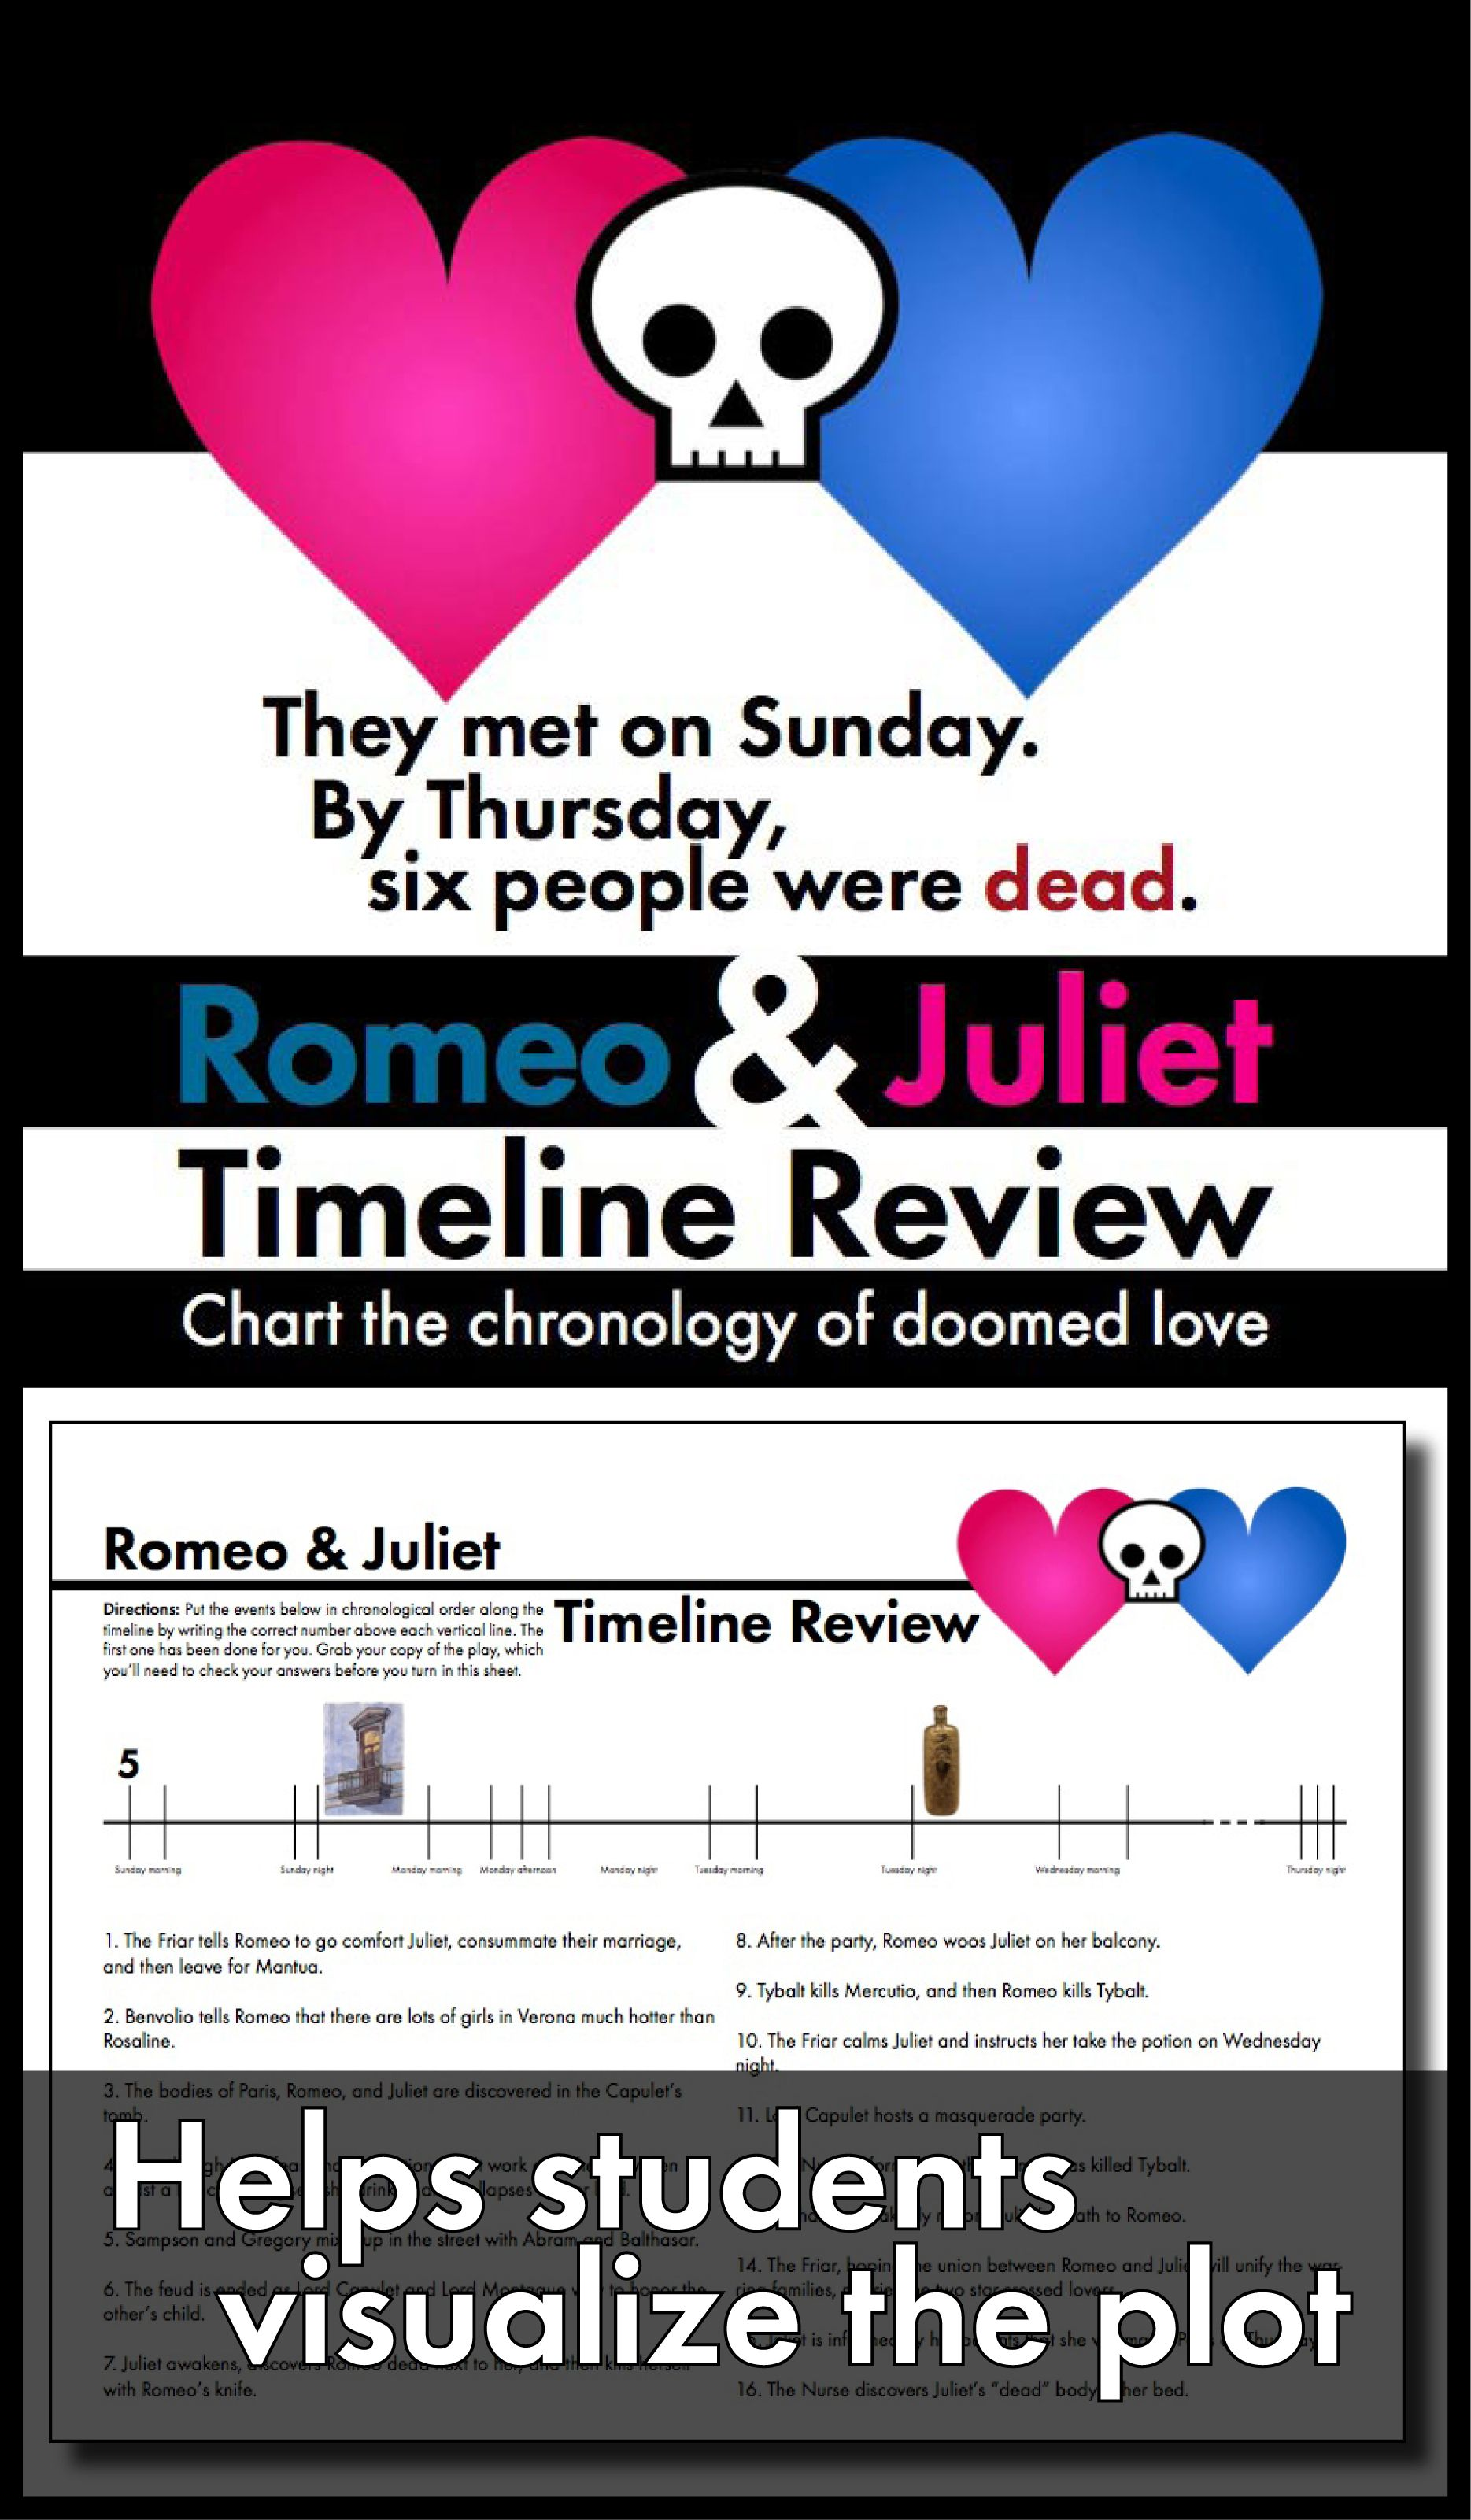 best images about romeo juliet timeline 17 best images about romeo juliet timeline student work and review games